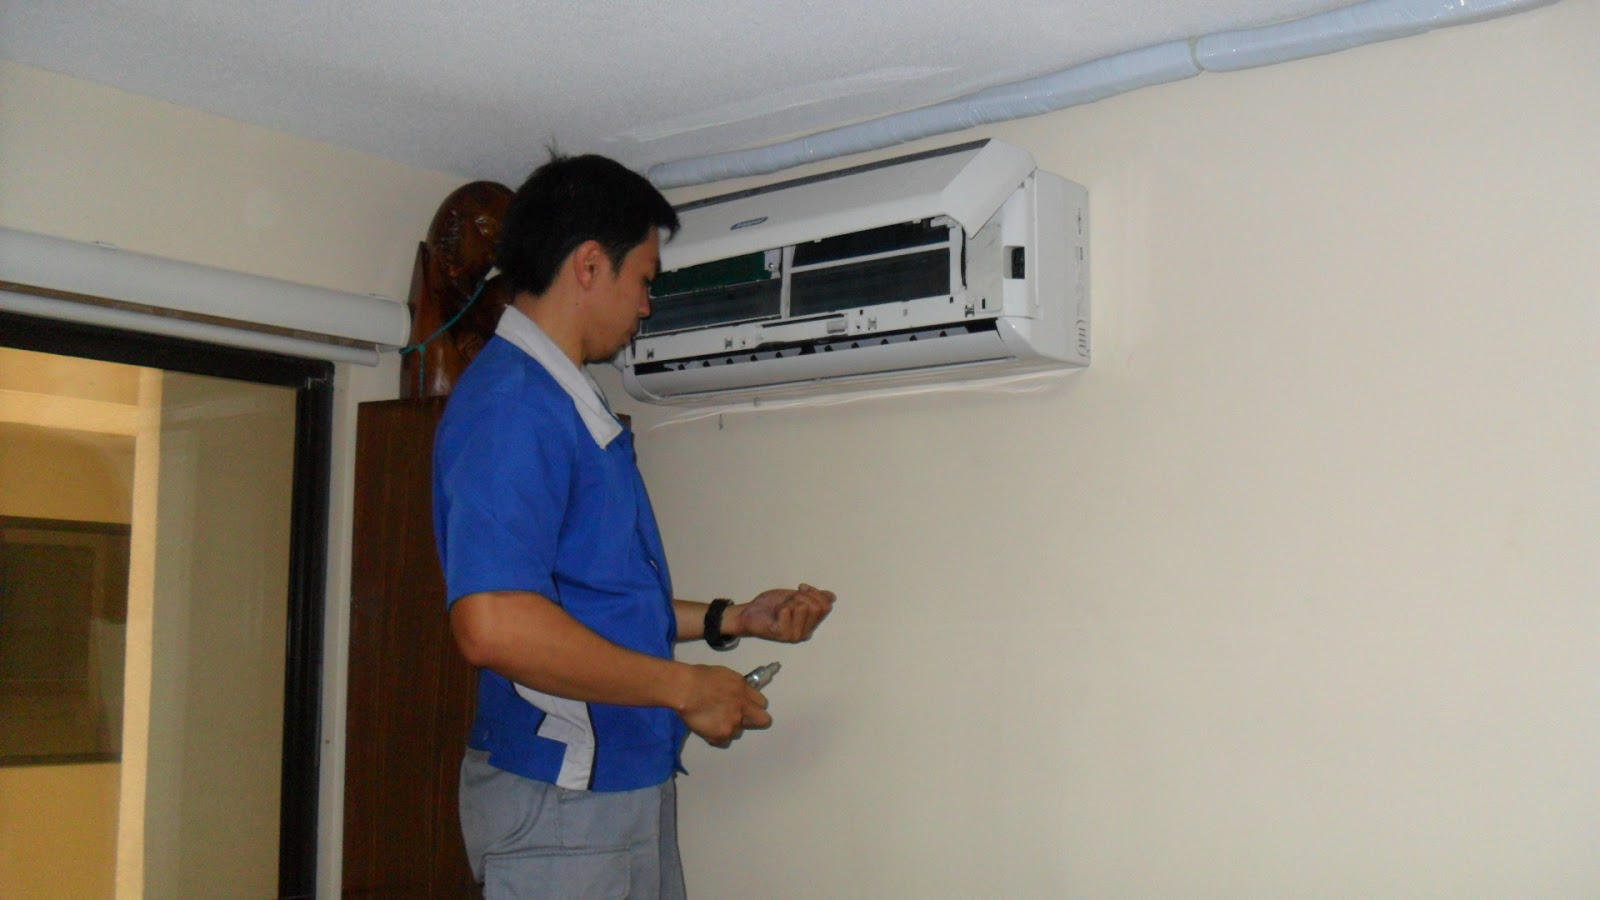 Refrigerator Wiring Diagram Pdf moreover Wafer Thermostat Wiring Diagram also Adjustable Timer likewise How To Make Incubator Timer Egg as well Automatic Waterers Replacement Parts. on incubator wiring diagram